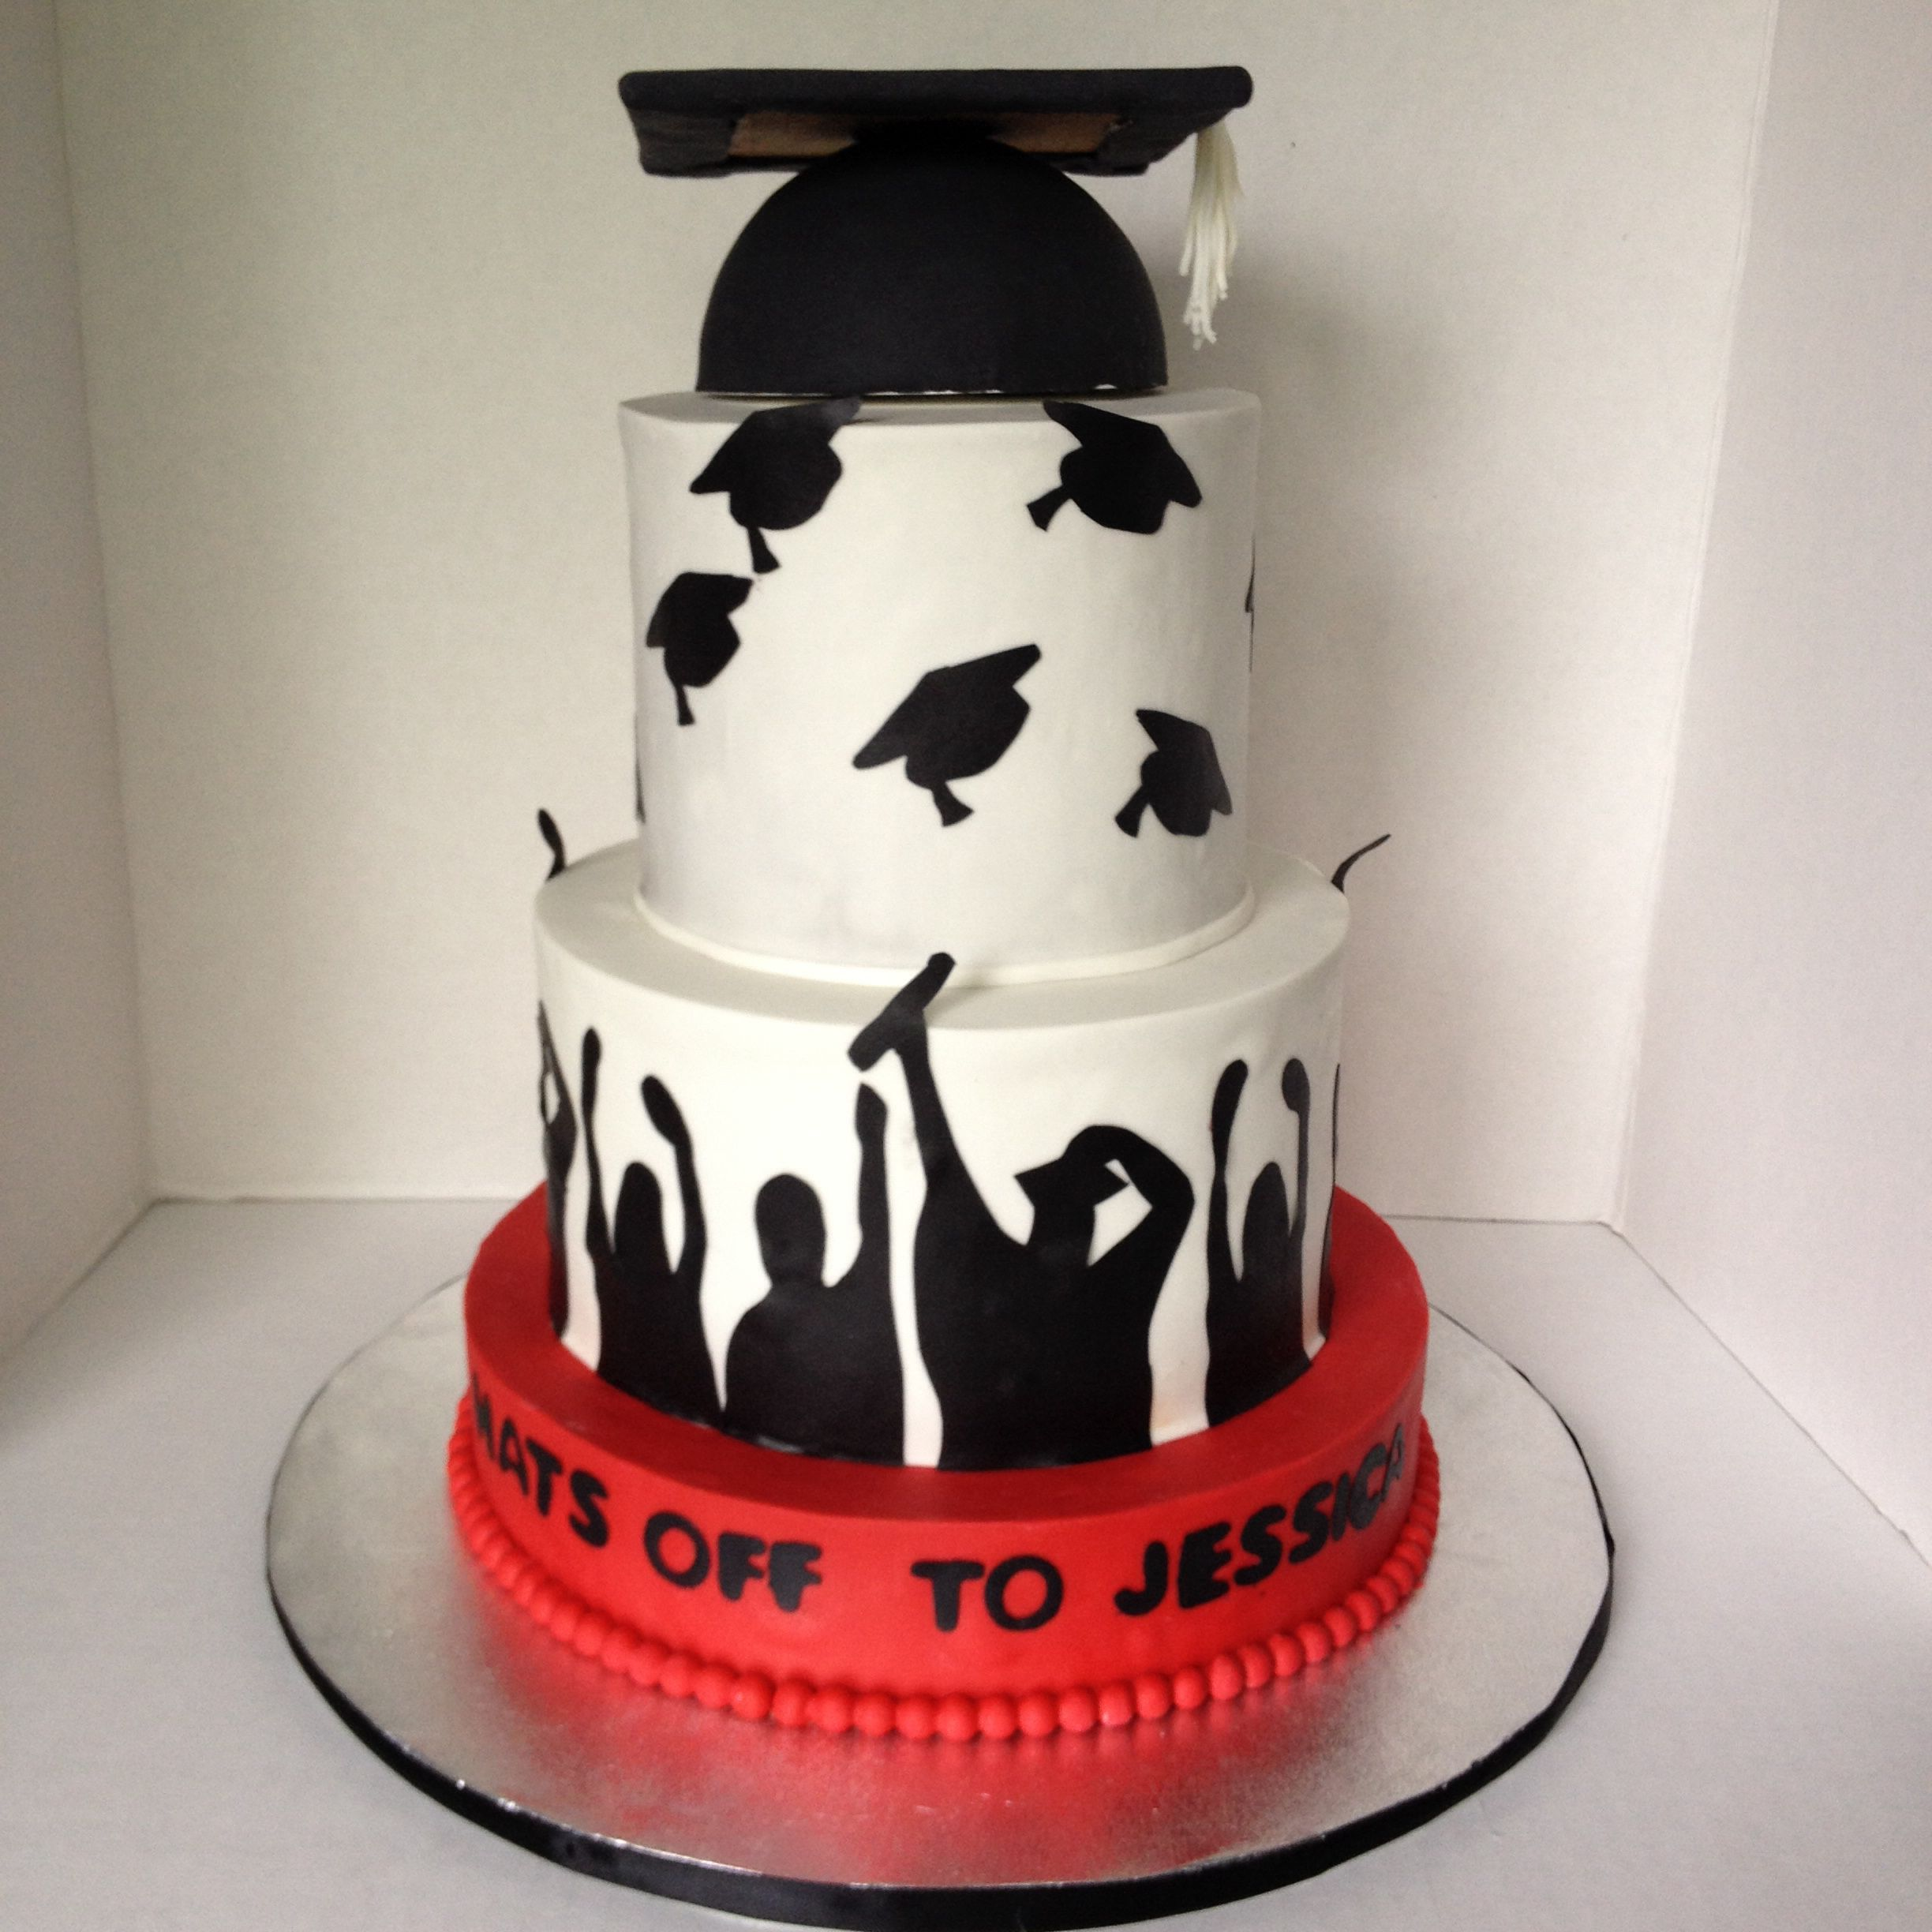 Graduation Cake In White Black And Red With Graduation Cap Graduation Party Cake Graduation Cakes Graduation Cake Designs